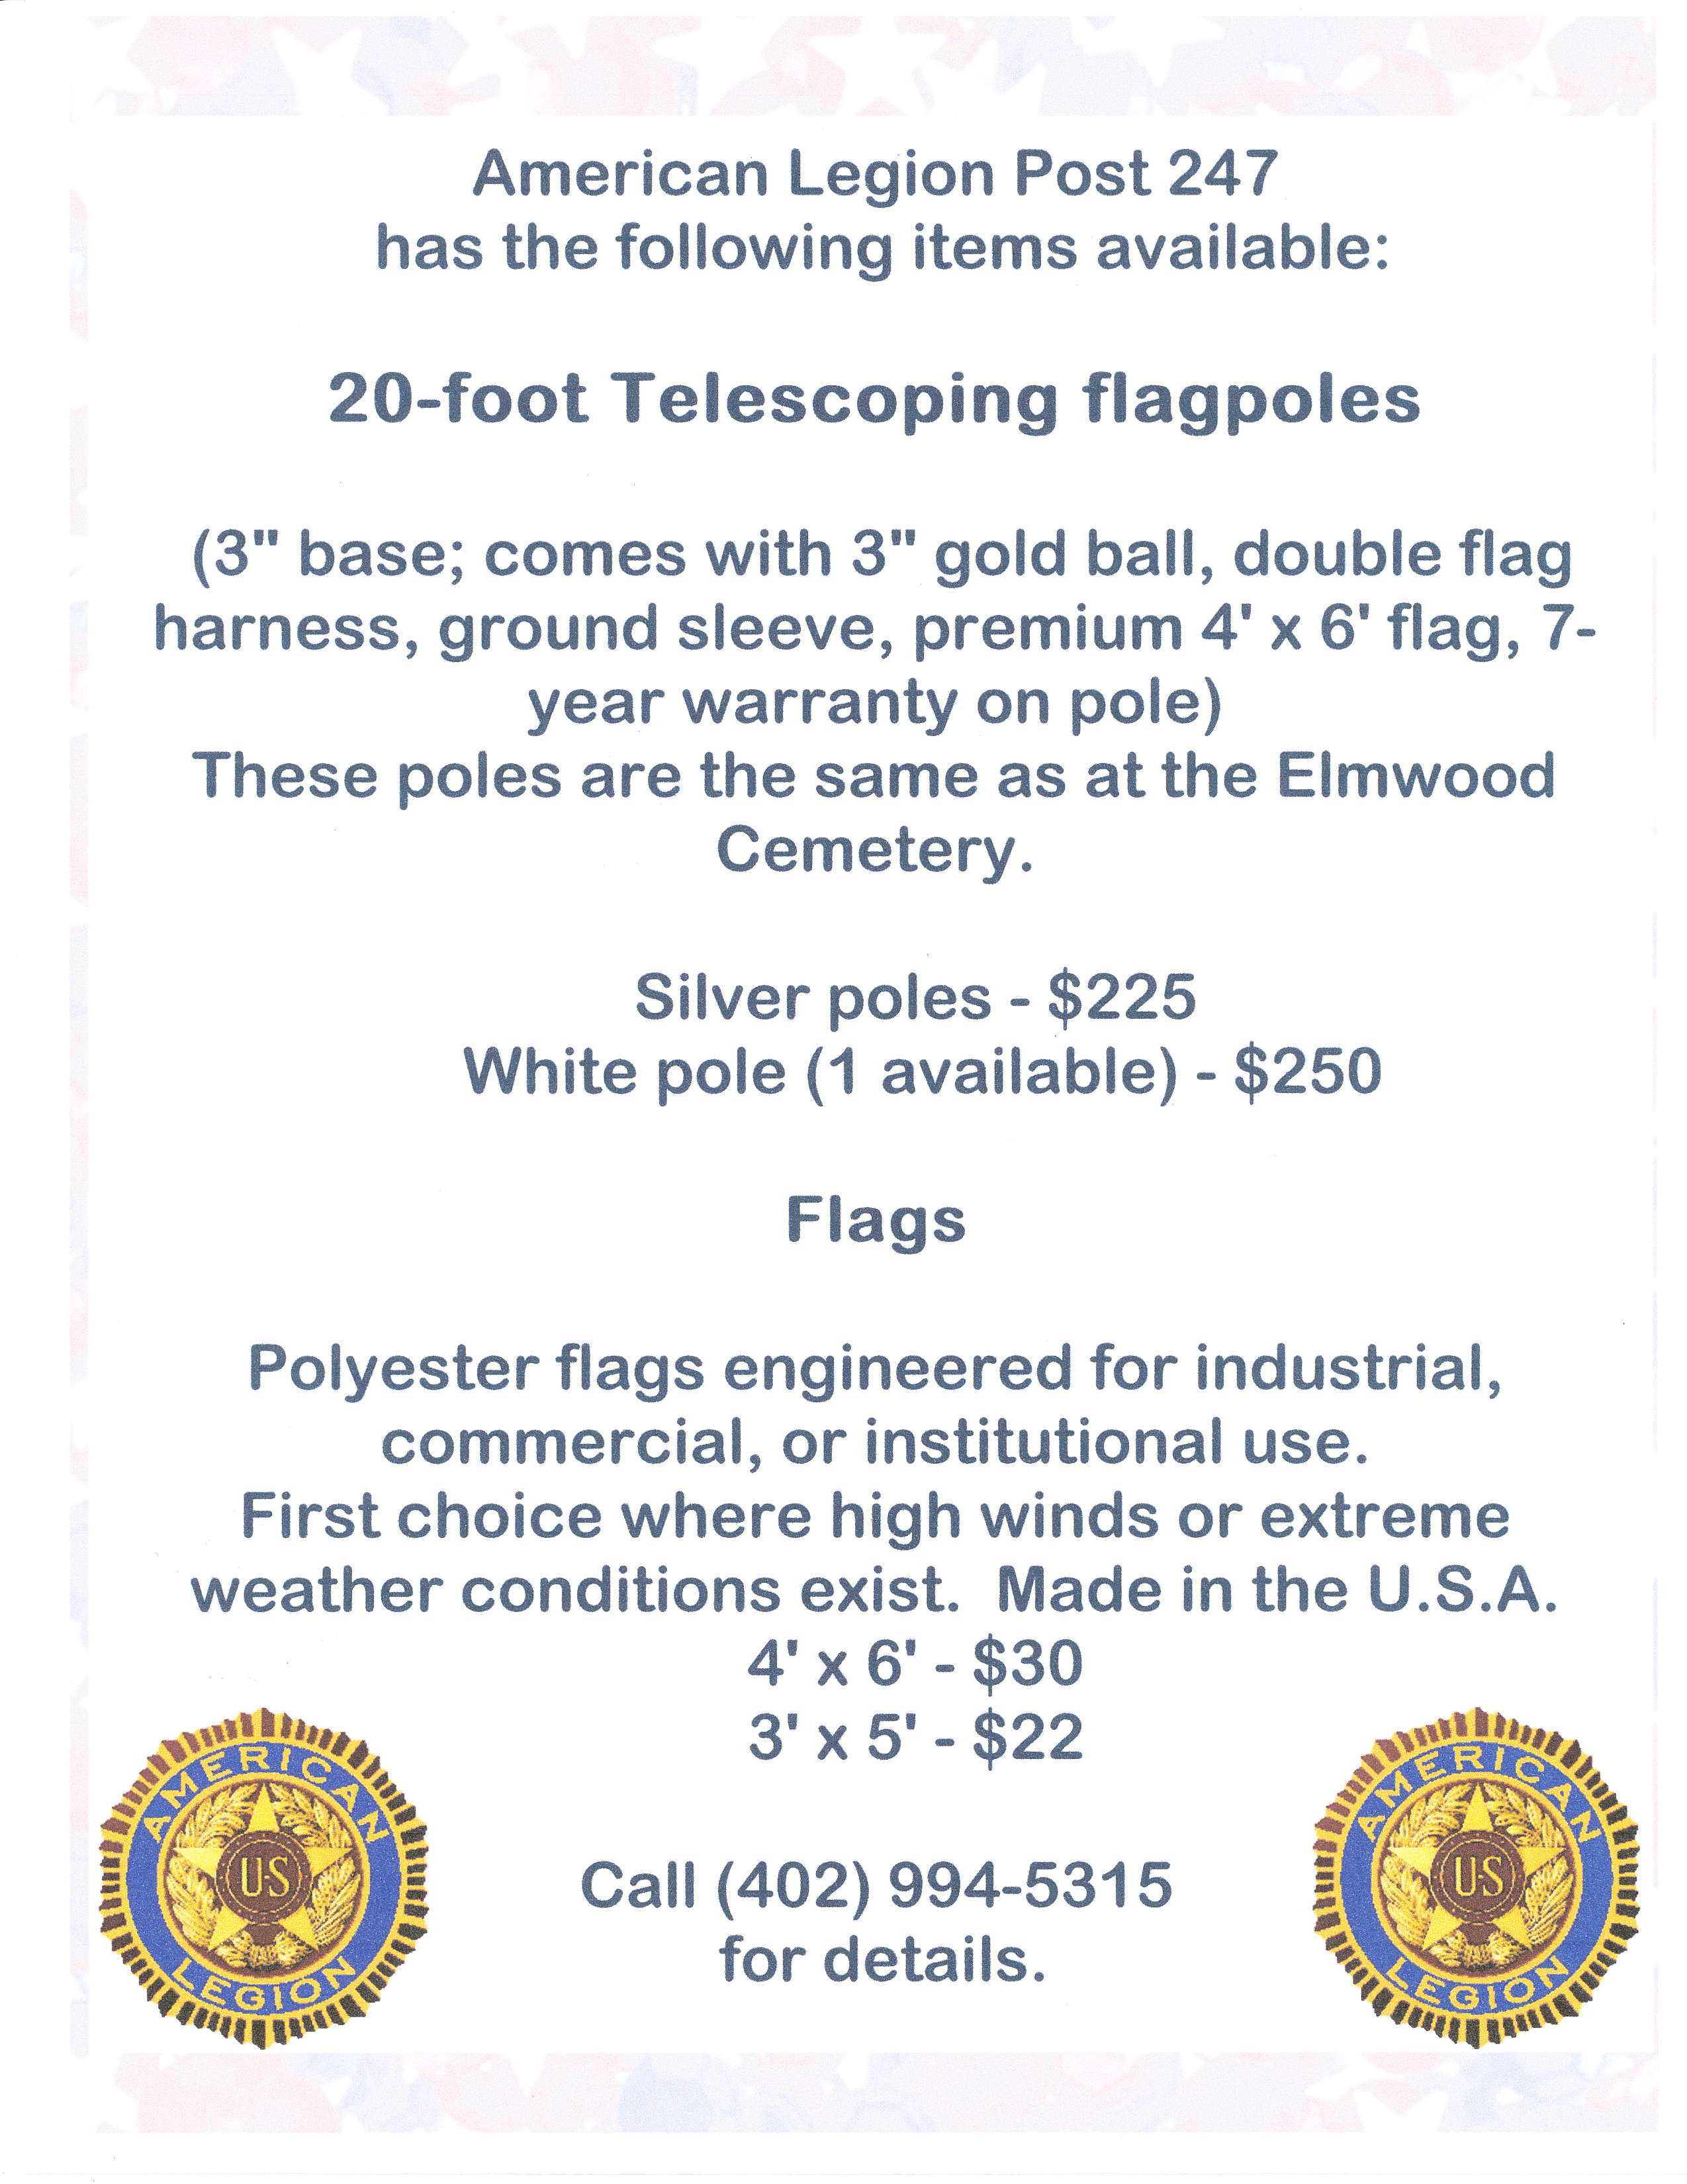 Flagpoles for sale